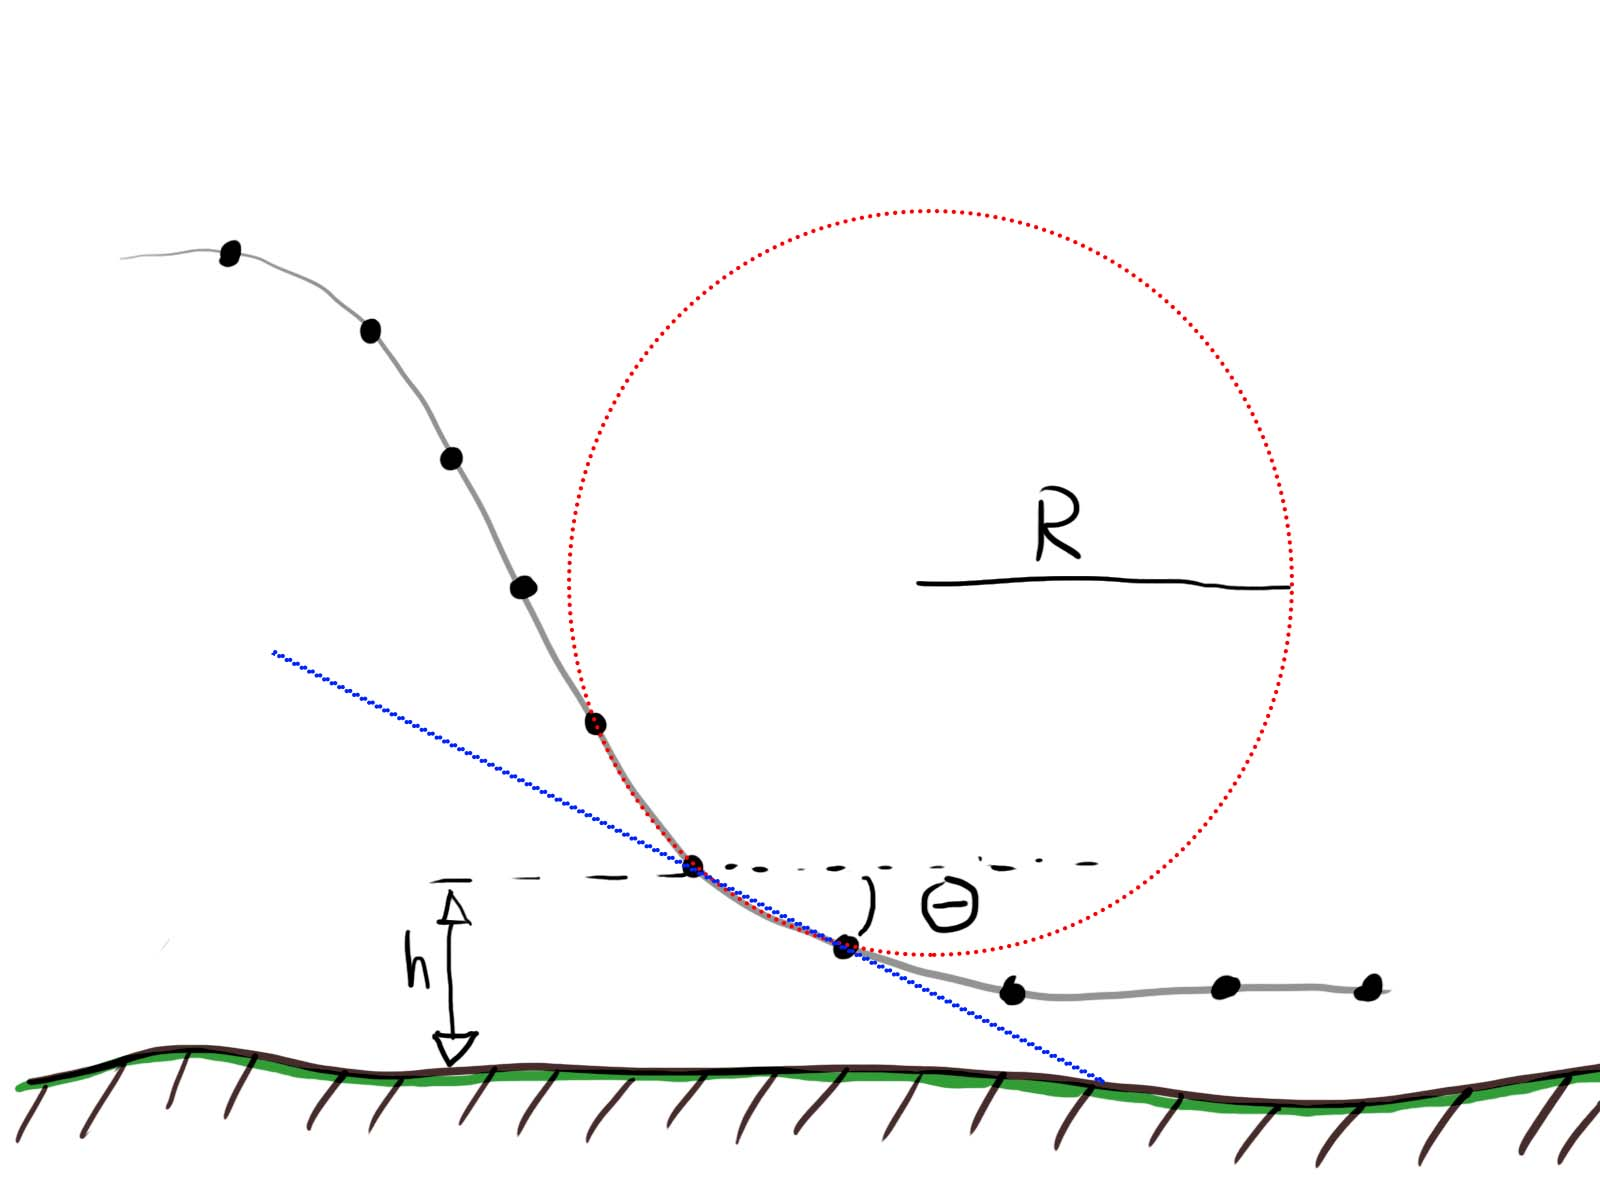 Buildits In Progress Roller Coaster Track Design Plot Diagram So Now That I Had A Way To Analyze Different Shapes Needed Come Up With An Exact Shape For The